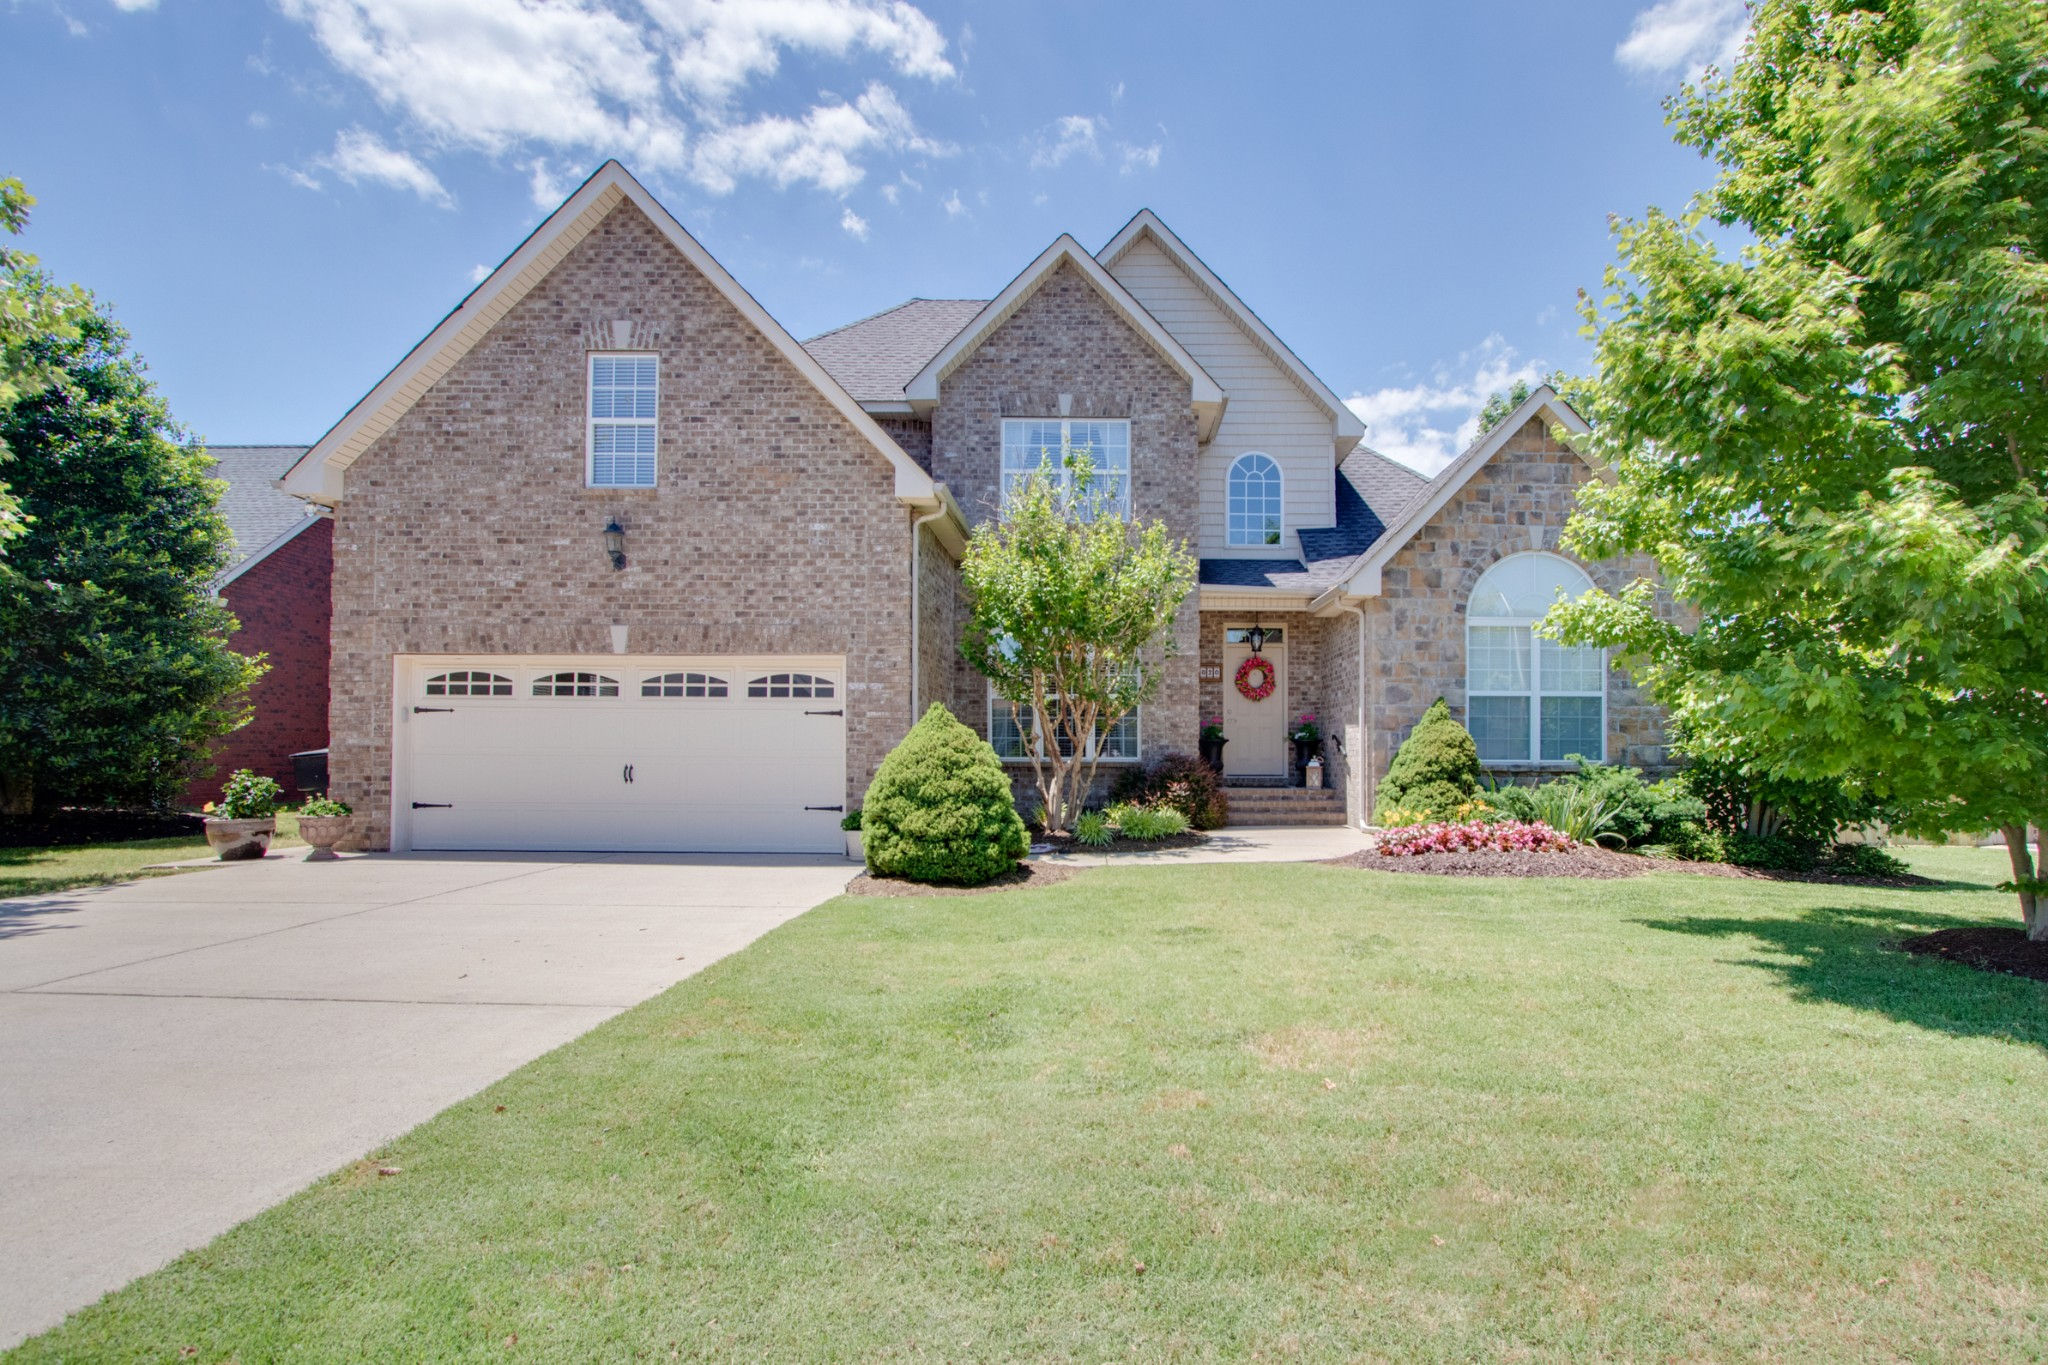 Upscale all brick home convenient to I-24 & 840. Soaring Ceilings. Light filled. Huge Master BR & Bath. Perfect layout has 2nd BR on main floor perfect for in-laws; nursery; office; etc. whatever you need! 2 BR and Bonus up, or 3 BR up!  2 new Trane HVACs in 2018; new granite kitchen countertop & tile backsplash with new dishwasher; gorgeous crown molding & millwork; backyard deck & fence; maximum 3 persons at each showing; please wear mask; Open House Sunday, May 31.  Don't miss this one!